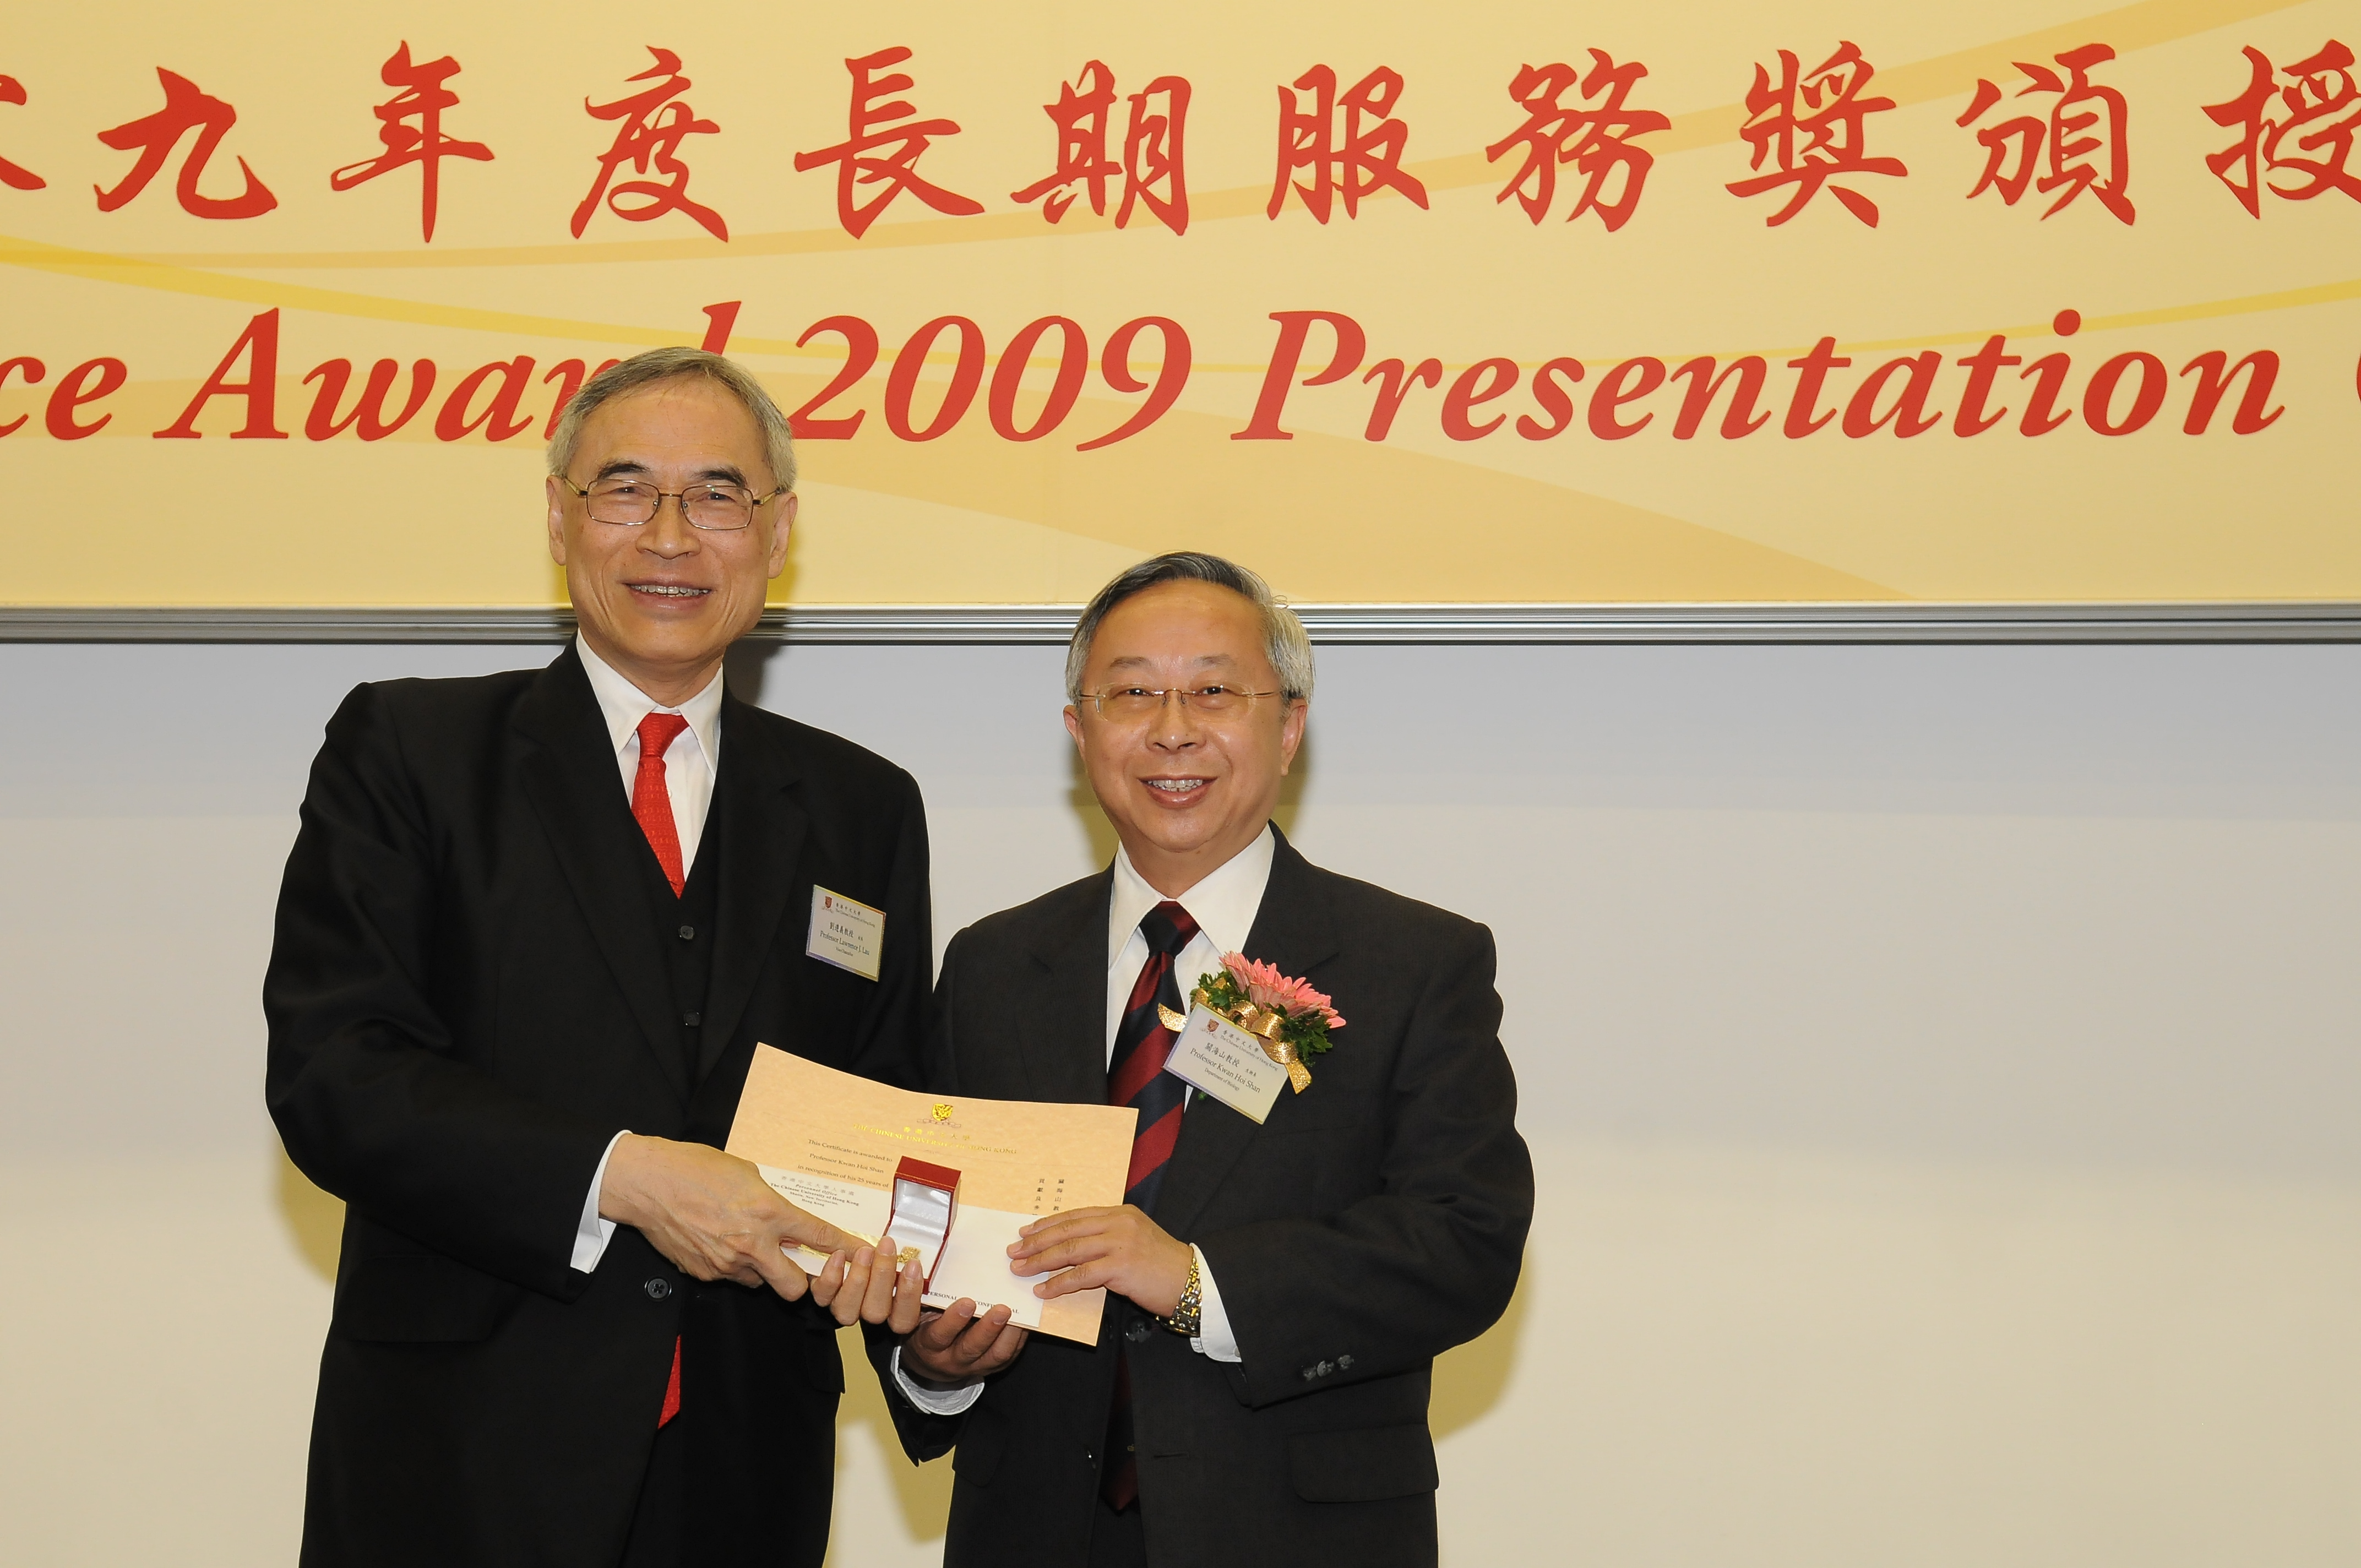 Prof. Lawrence J. Lau presents a certificate and a gold lapel pin to Prof. Kwan Hoi-shan, recipient of 25-year Long Service Award